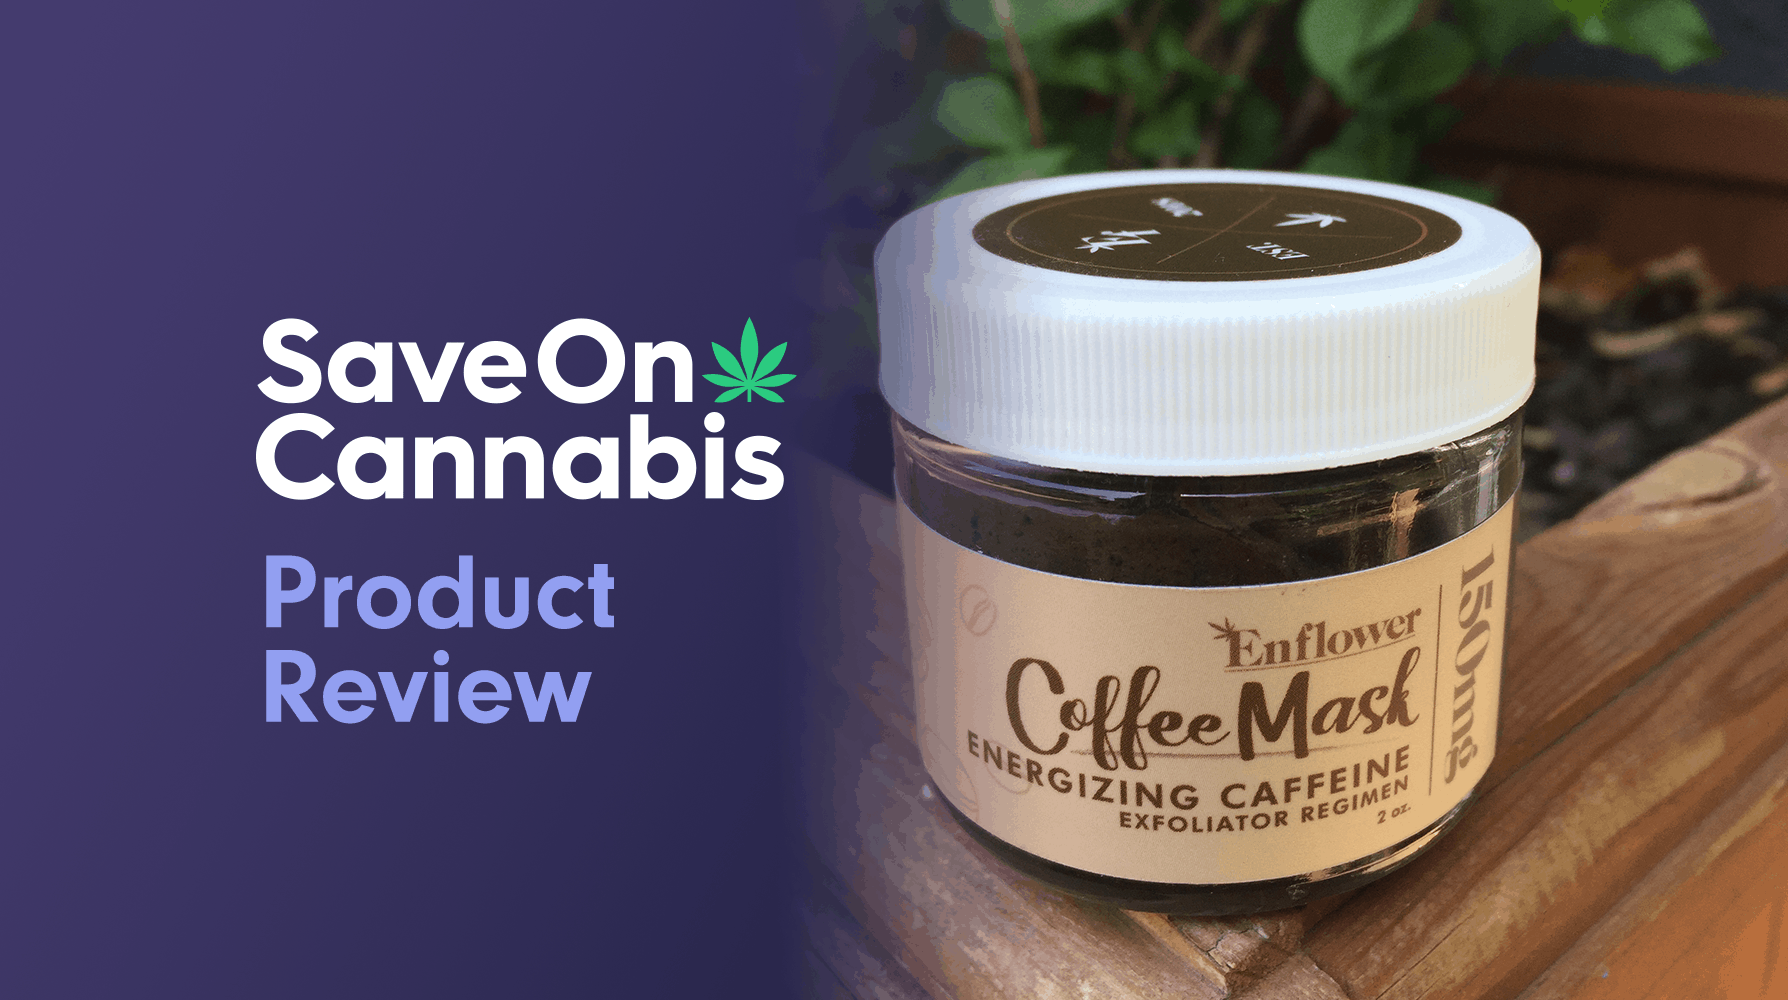 Enflower cbd coffee face mask CBD review save on cannabis Review website